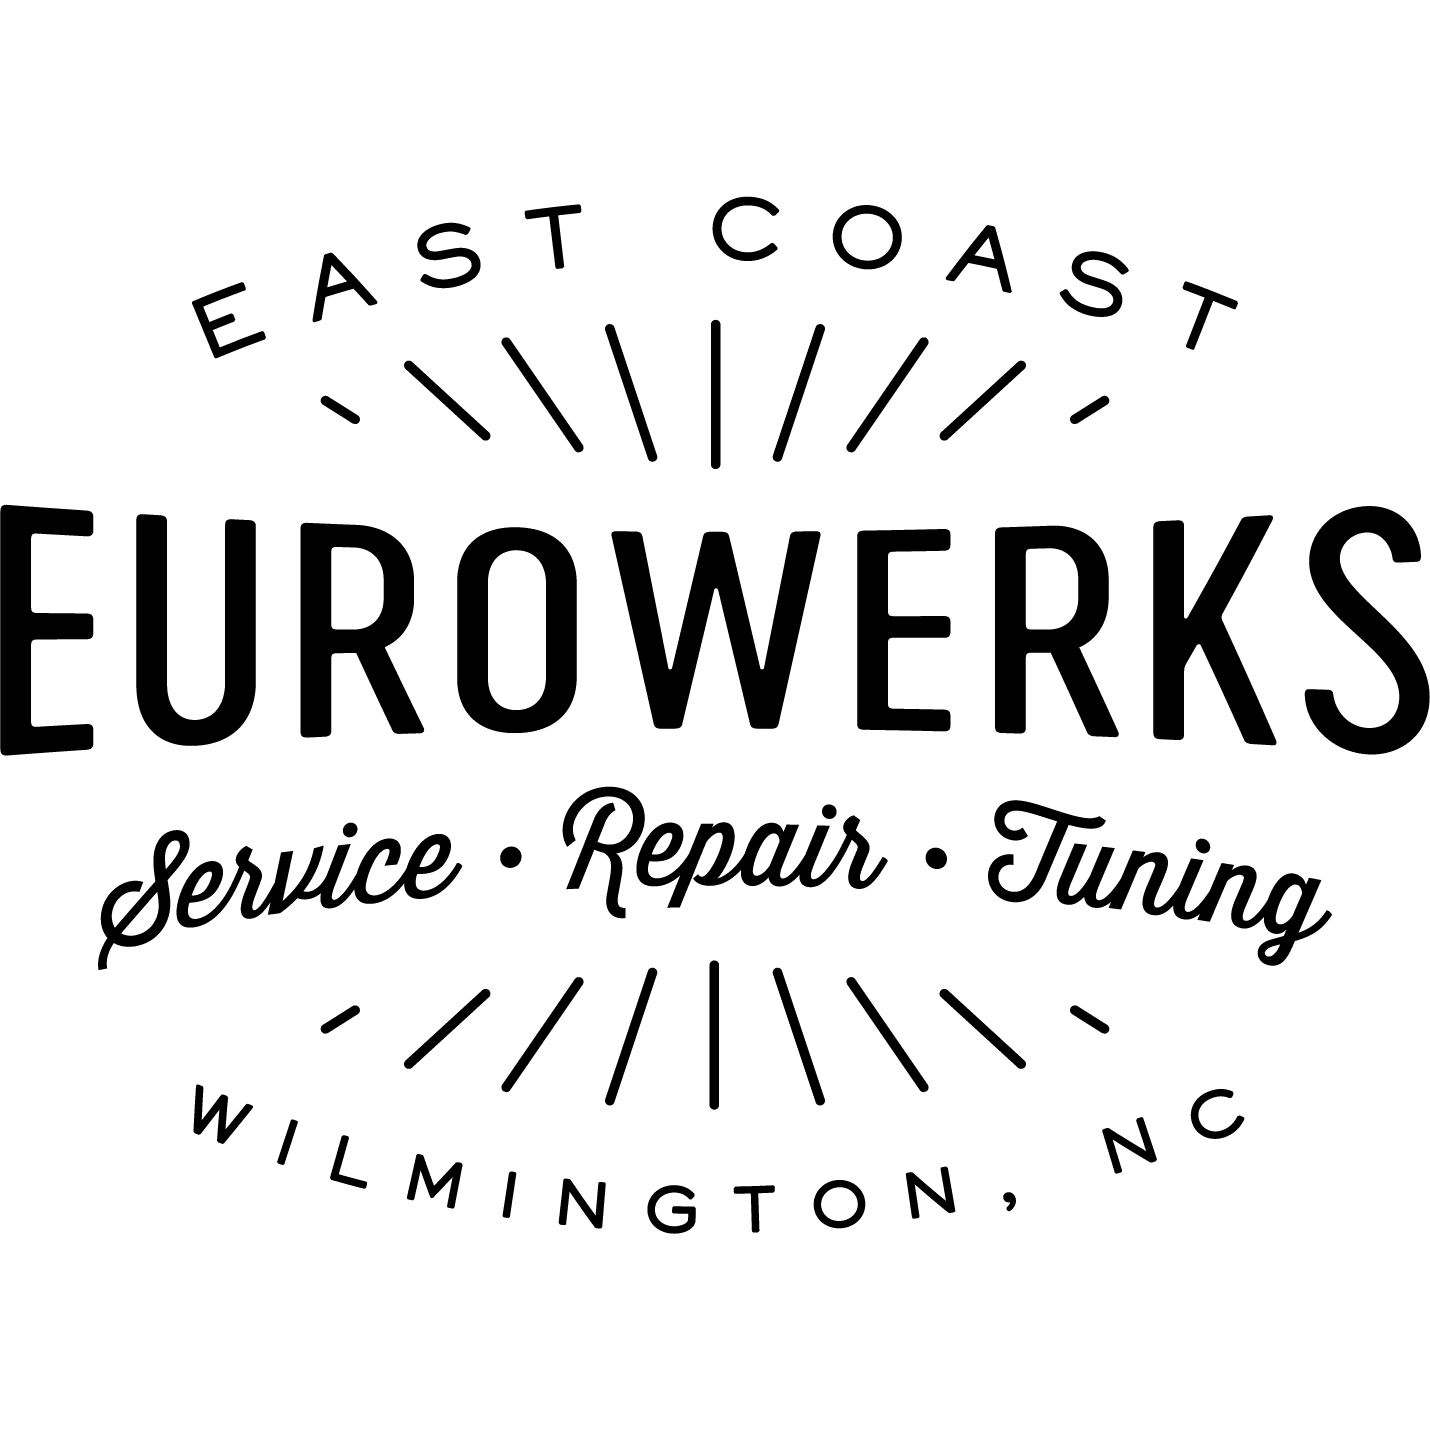 East Coast Eurowerks